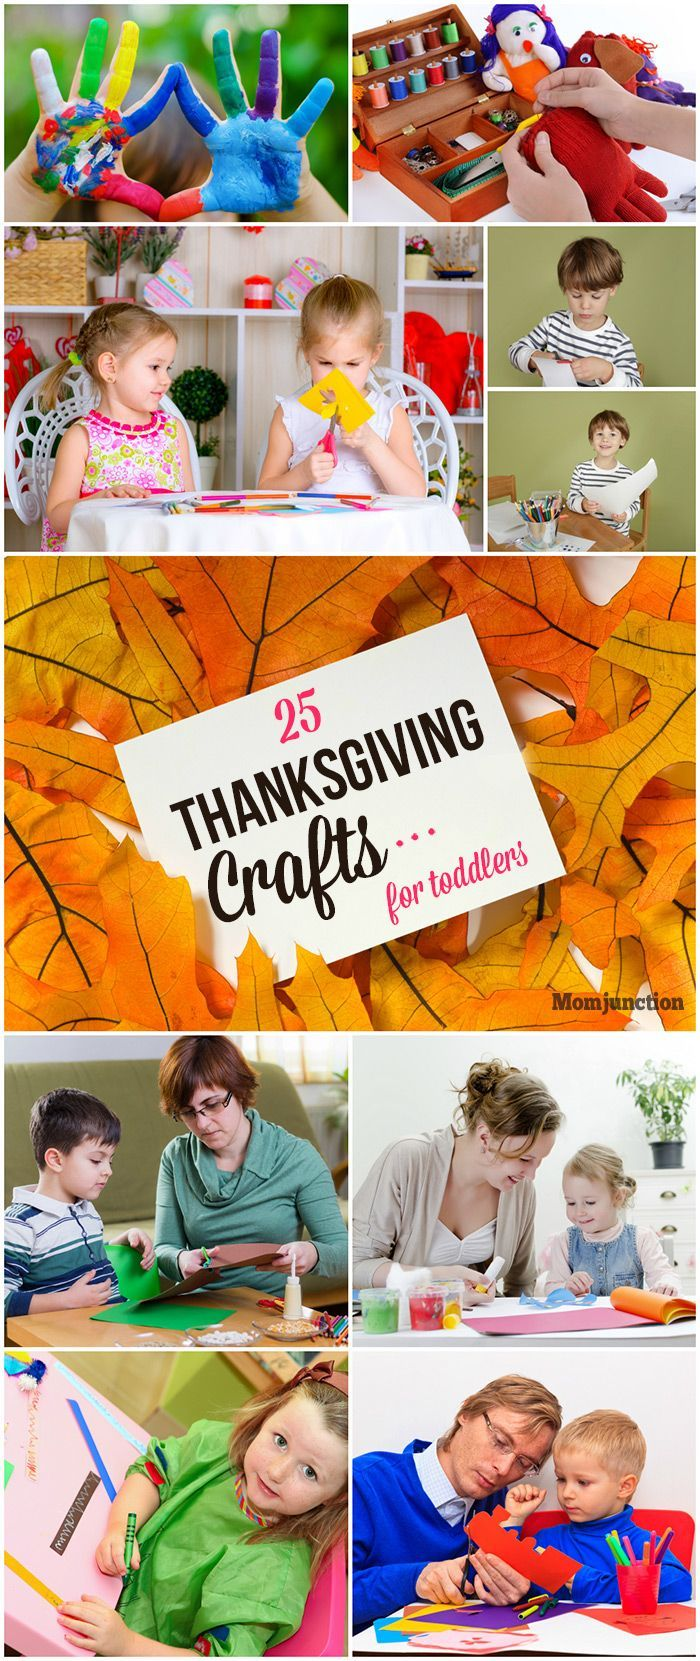 25 Thanksgiving Crafts For Toddlers/Preschoolers